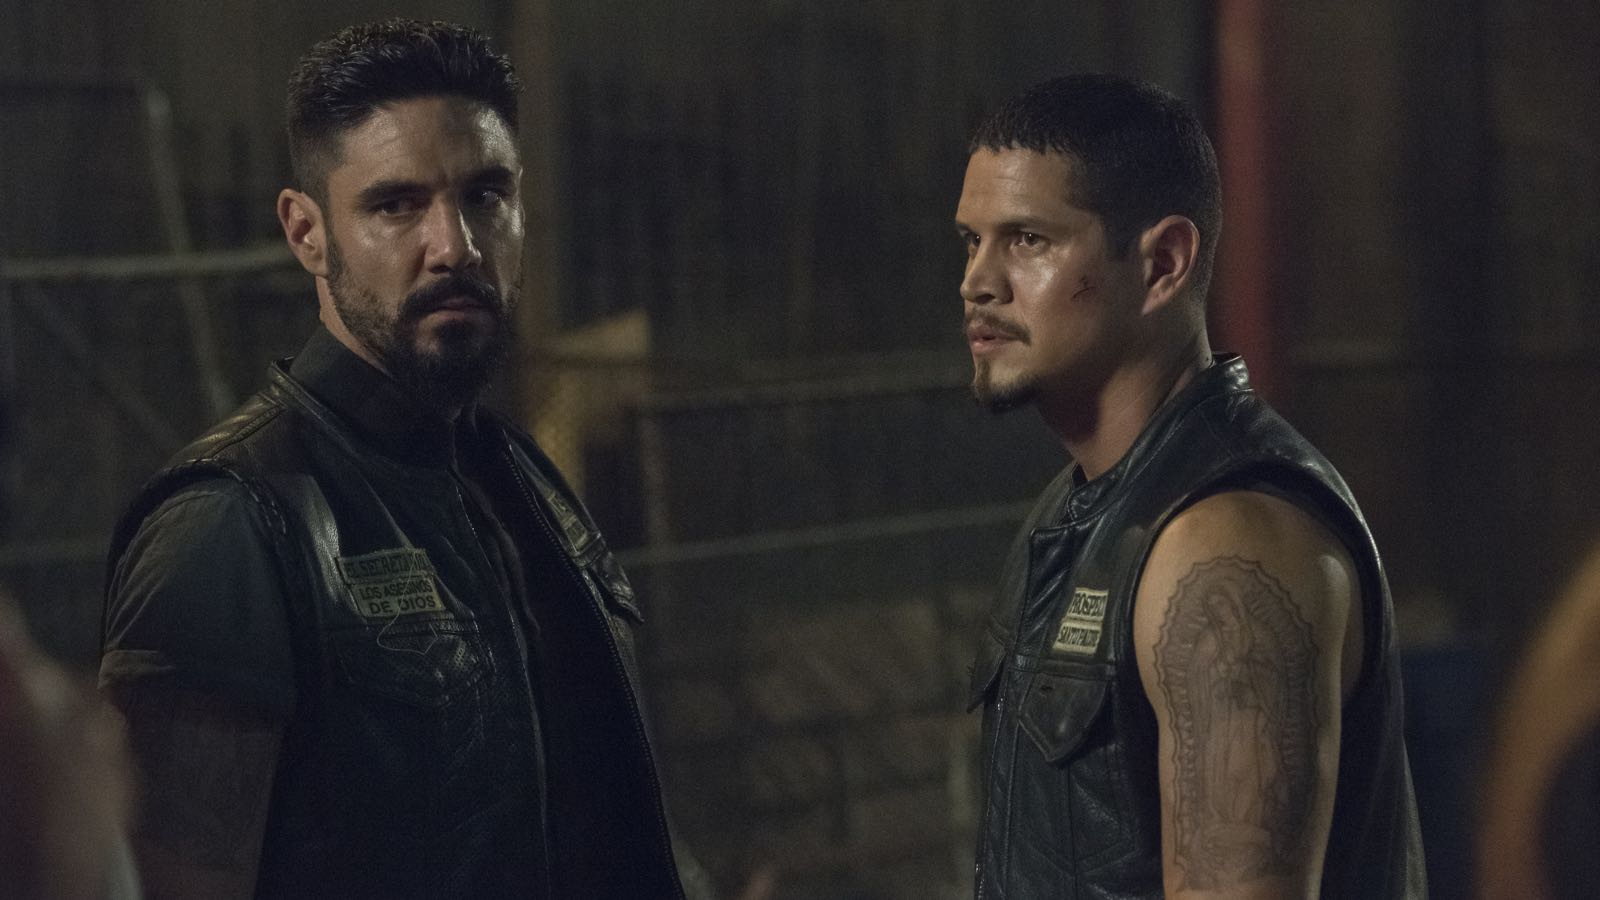 Mayans MC Season 2 release date might be sooner than expected